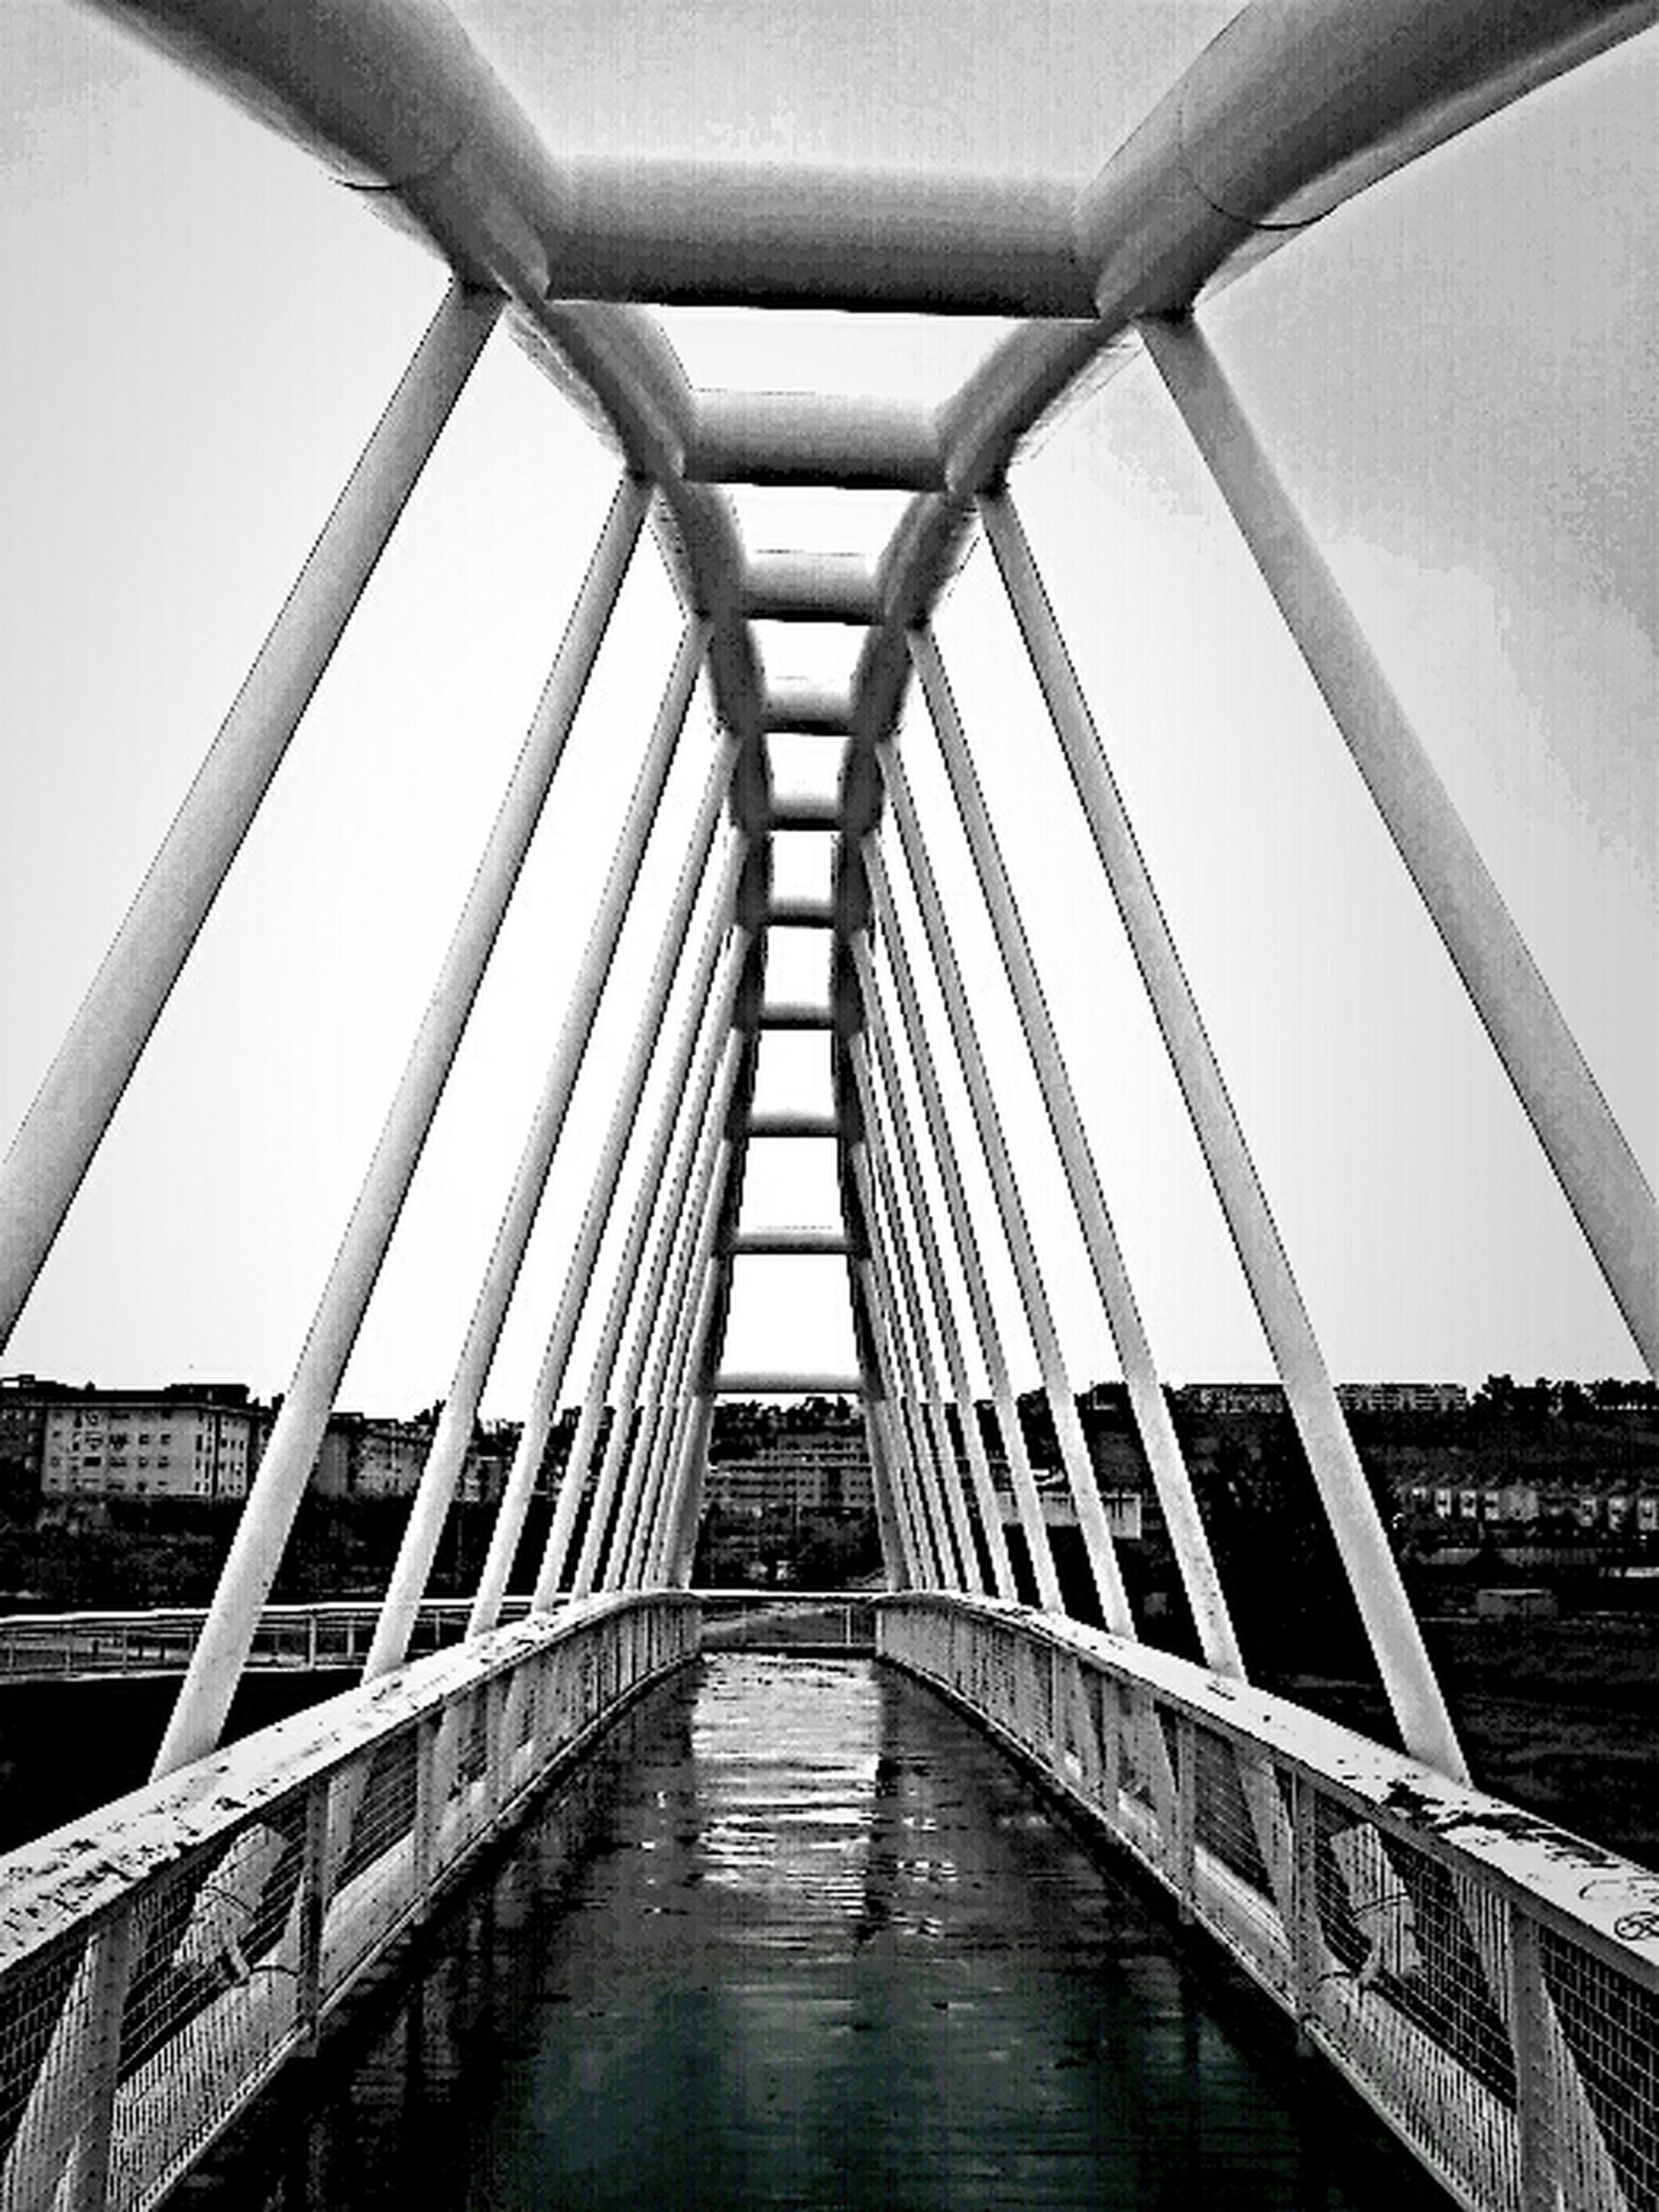 architecture, built structure, bridge - man made structure, water, reflection, low angle view, connection, modern, sky, building exterior, glass - material, indoors, river, diminishing perspective, city, day, bridge, waterfront, engineering, no people